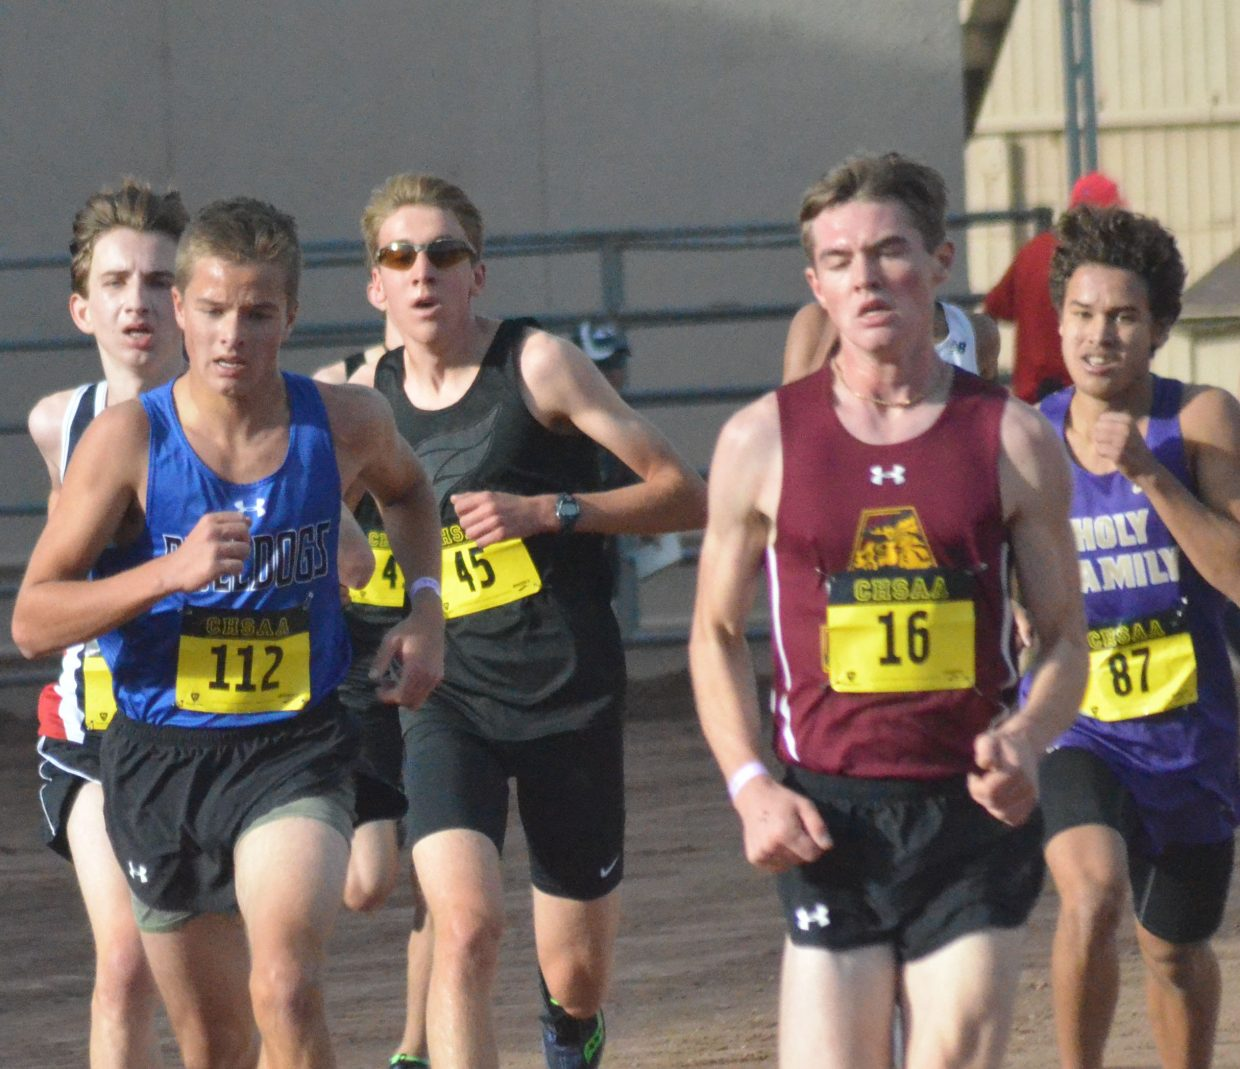 Moffat County High School cross country runner Keaton Knez looks to stay in front of the competition at the CHSAA State Championships in Colorado Springs.